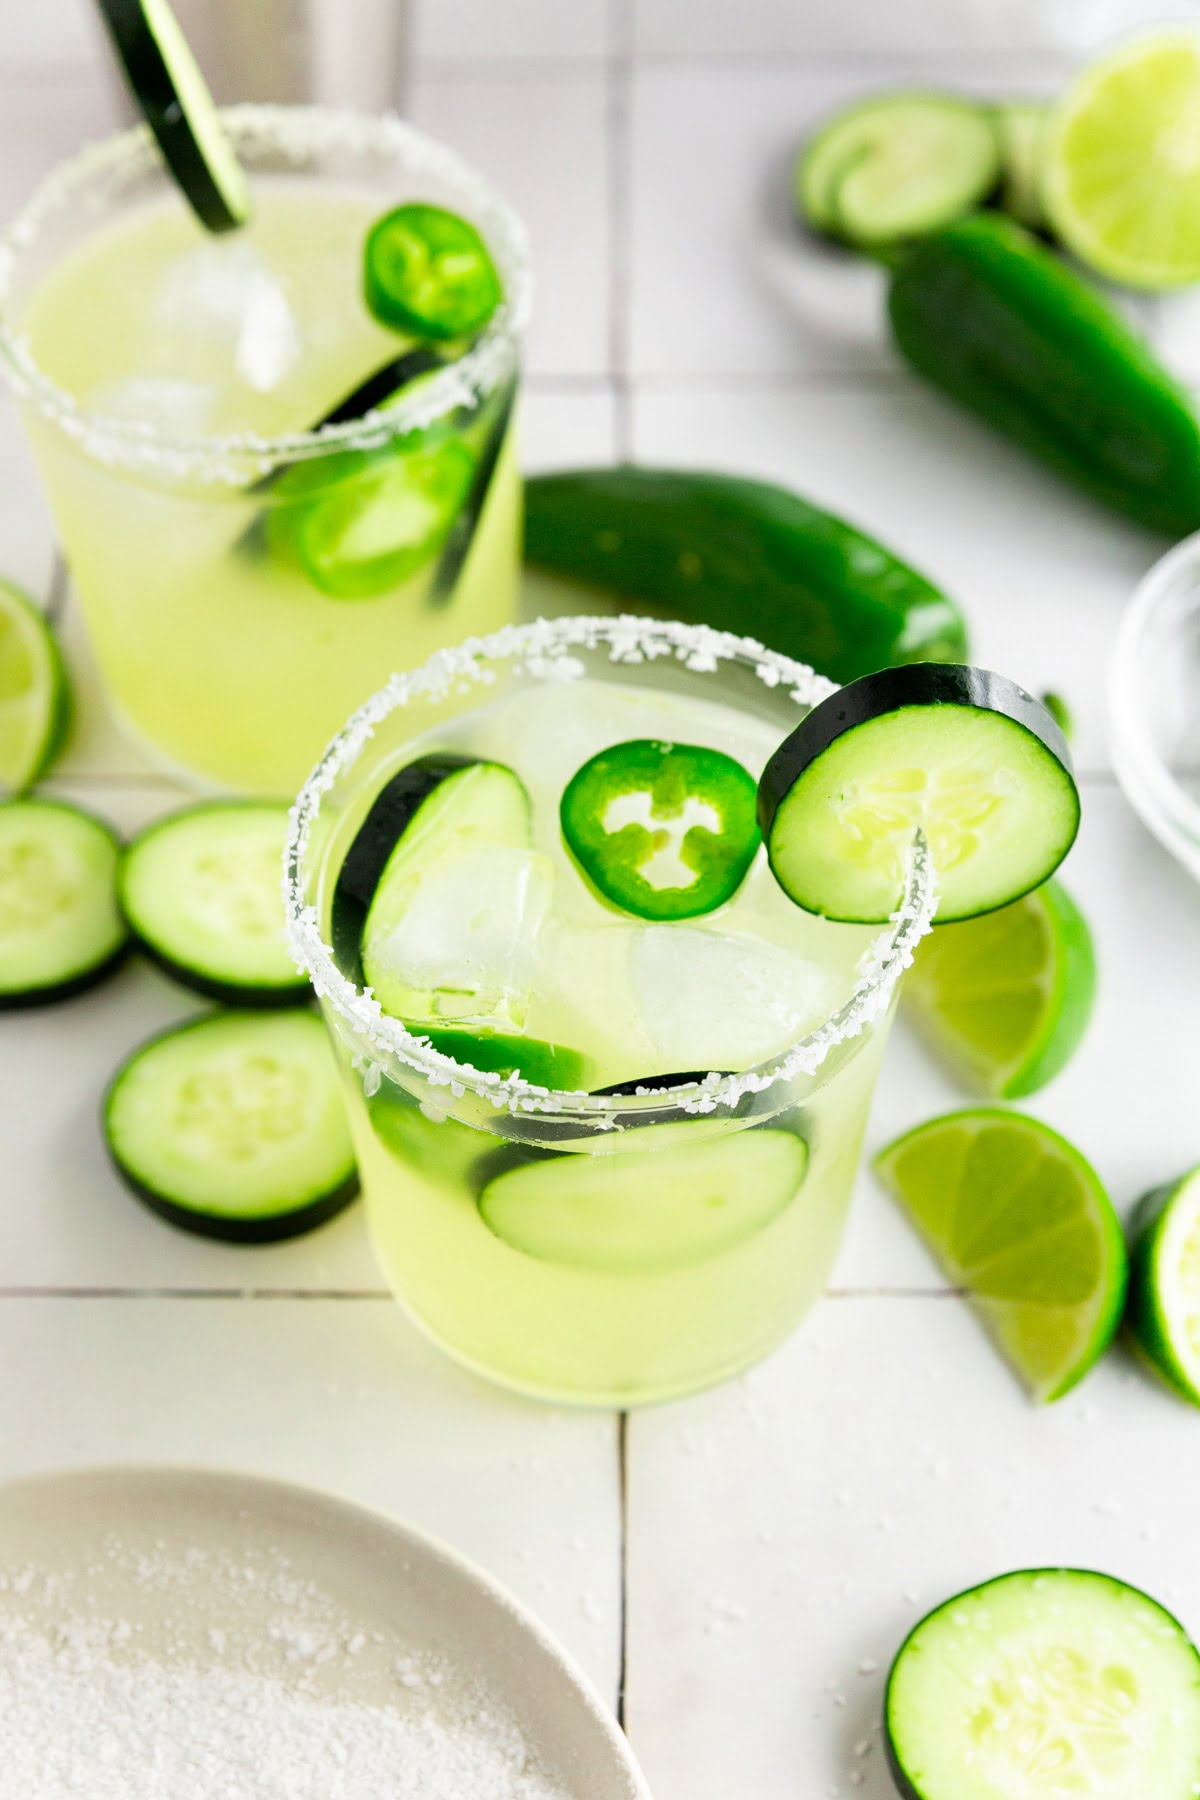 A photo of two margarita glasses filled with cucumber jalapeño margarita and rimmed with kosher salt.